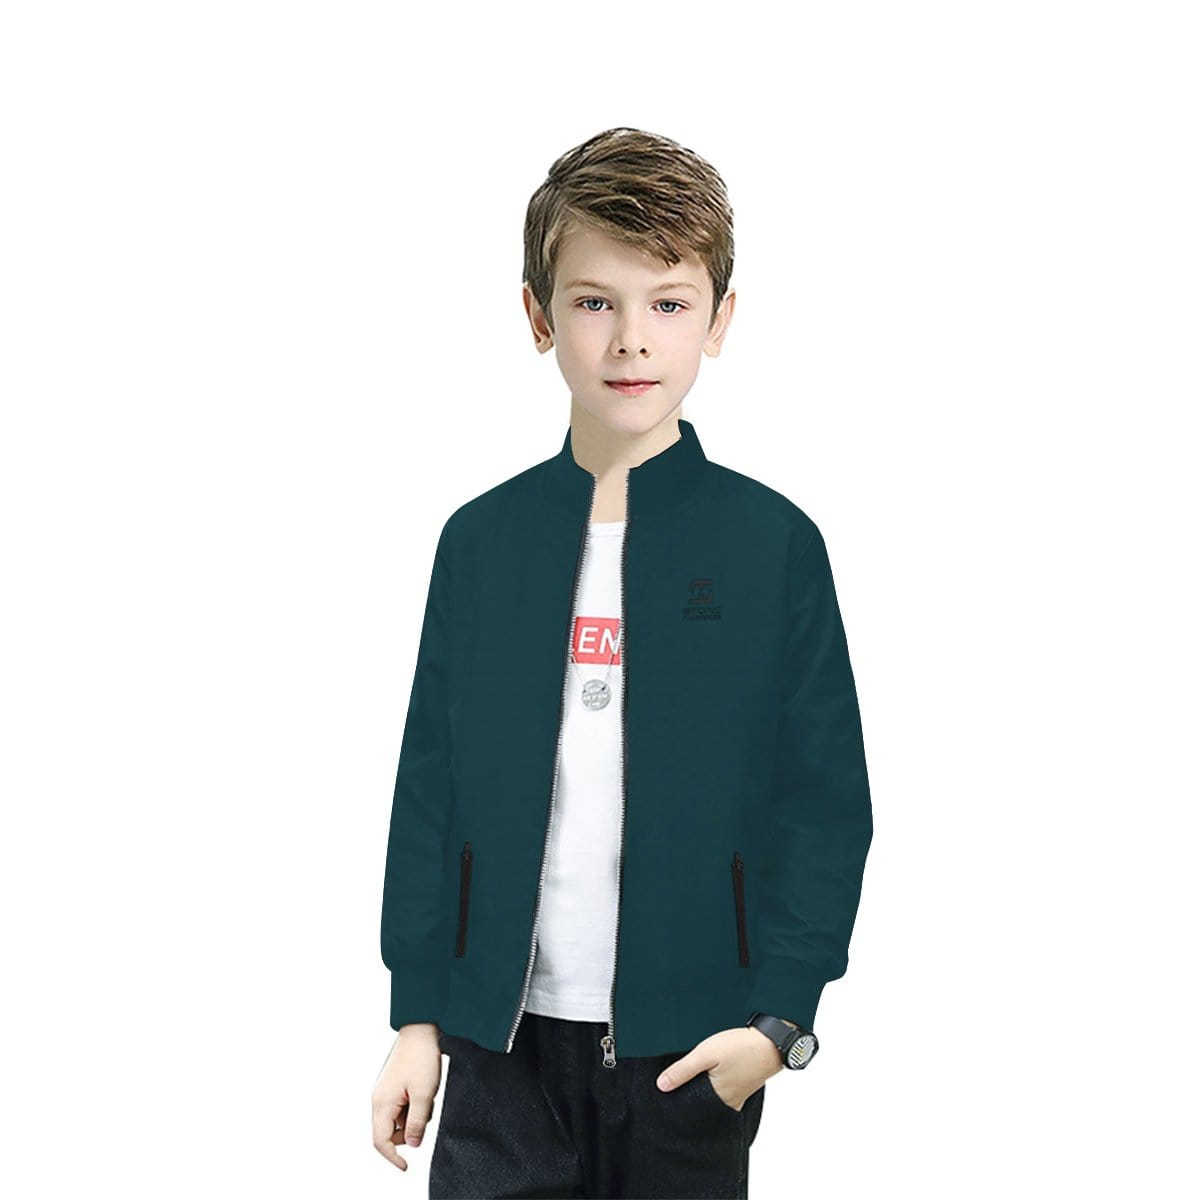 Stone Harbor Boy's Bomber Jacket Bottle Green / 2-3 Years Boy's Stone Harbor ZYLO BOMBER JACKET